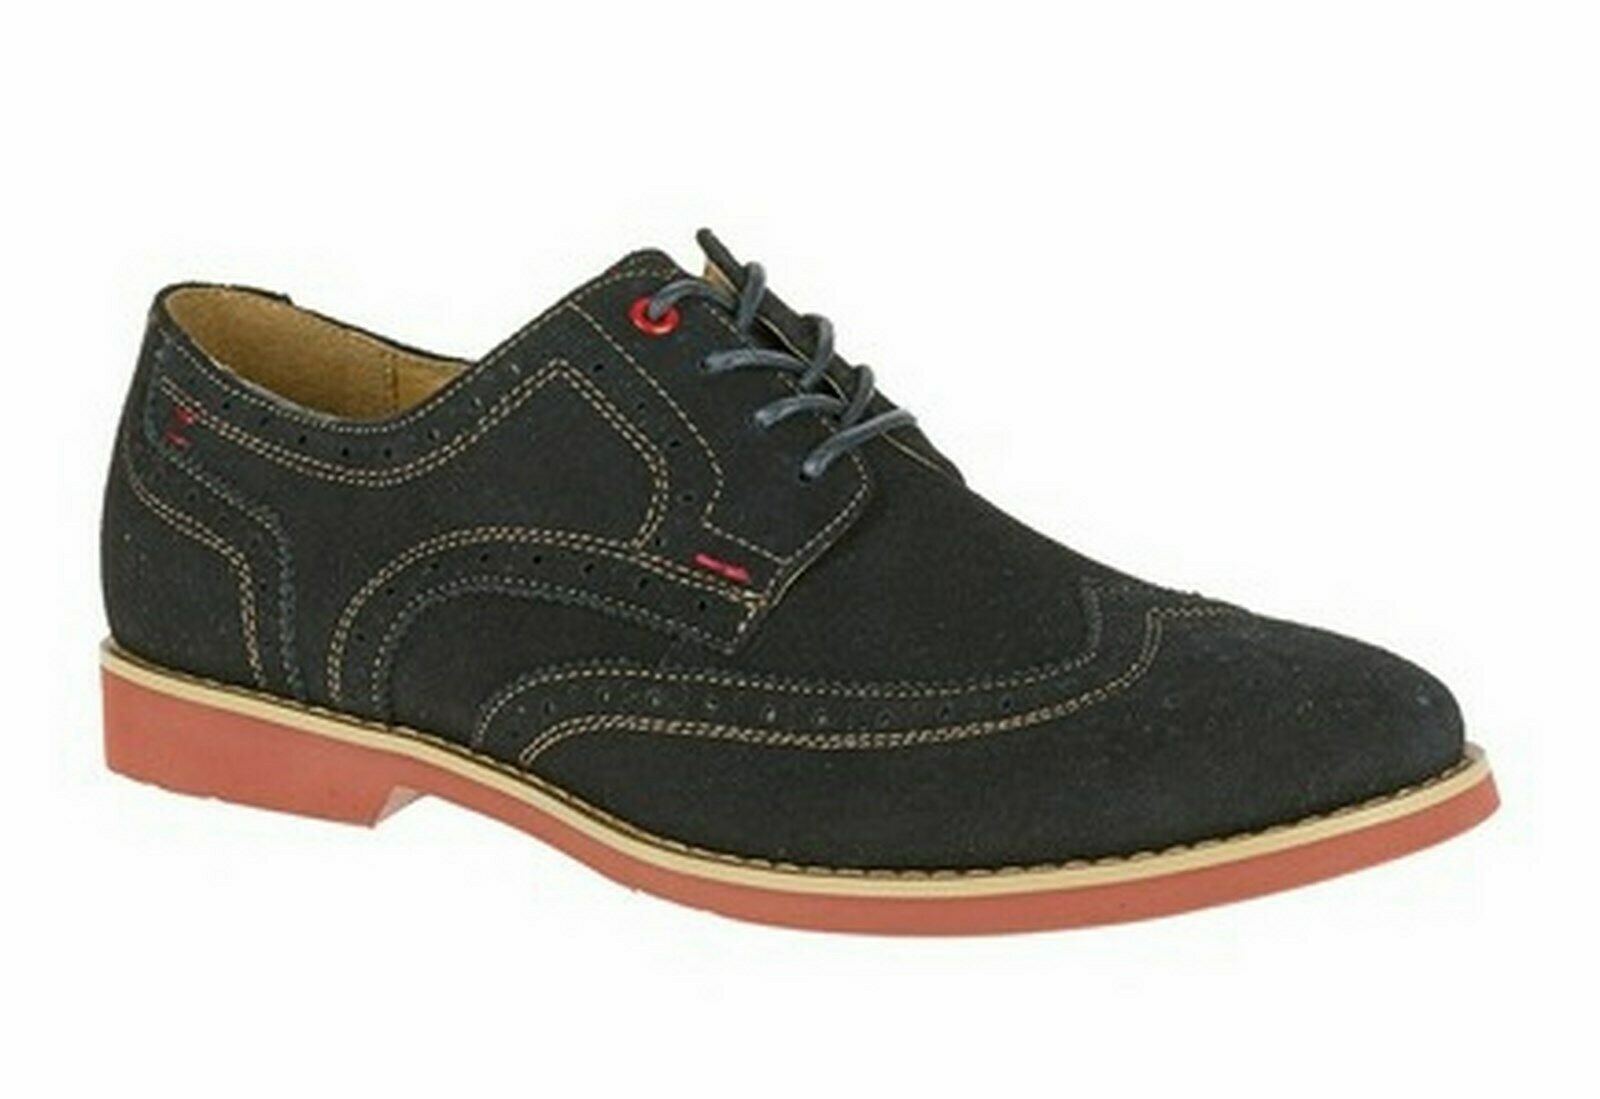 Hush Puppies Fowler EZ Lace Up Oxford - Wide